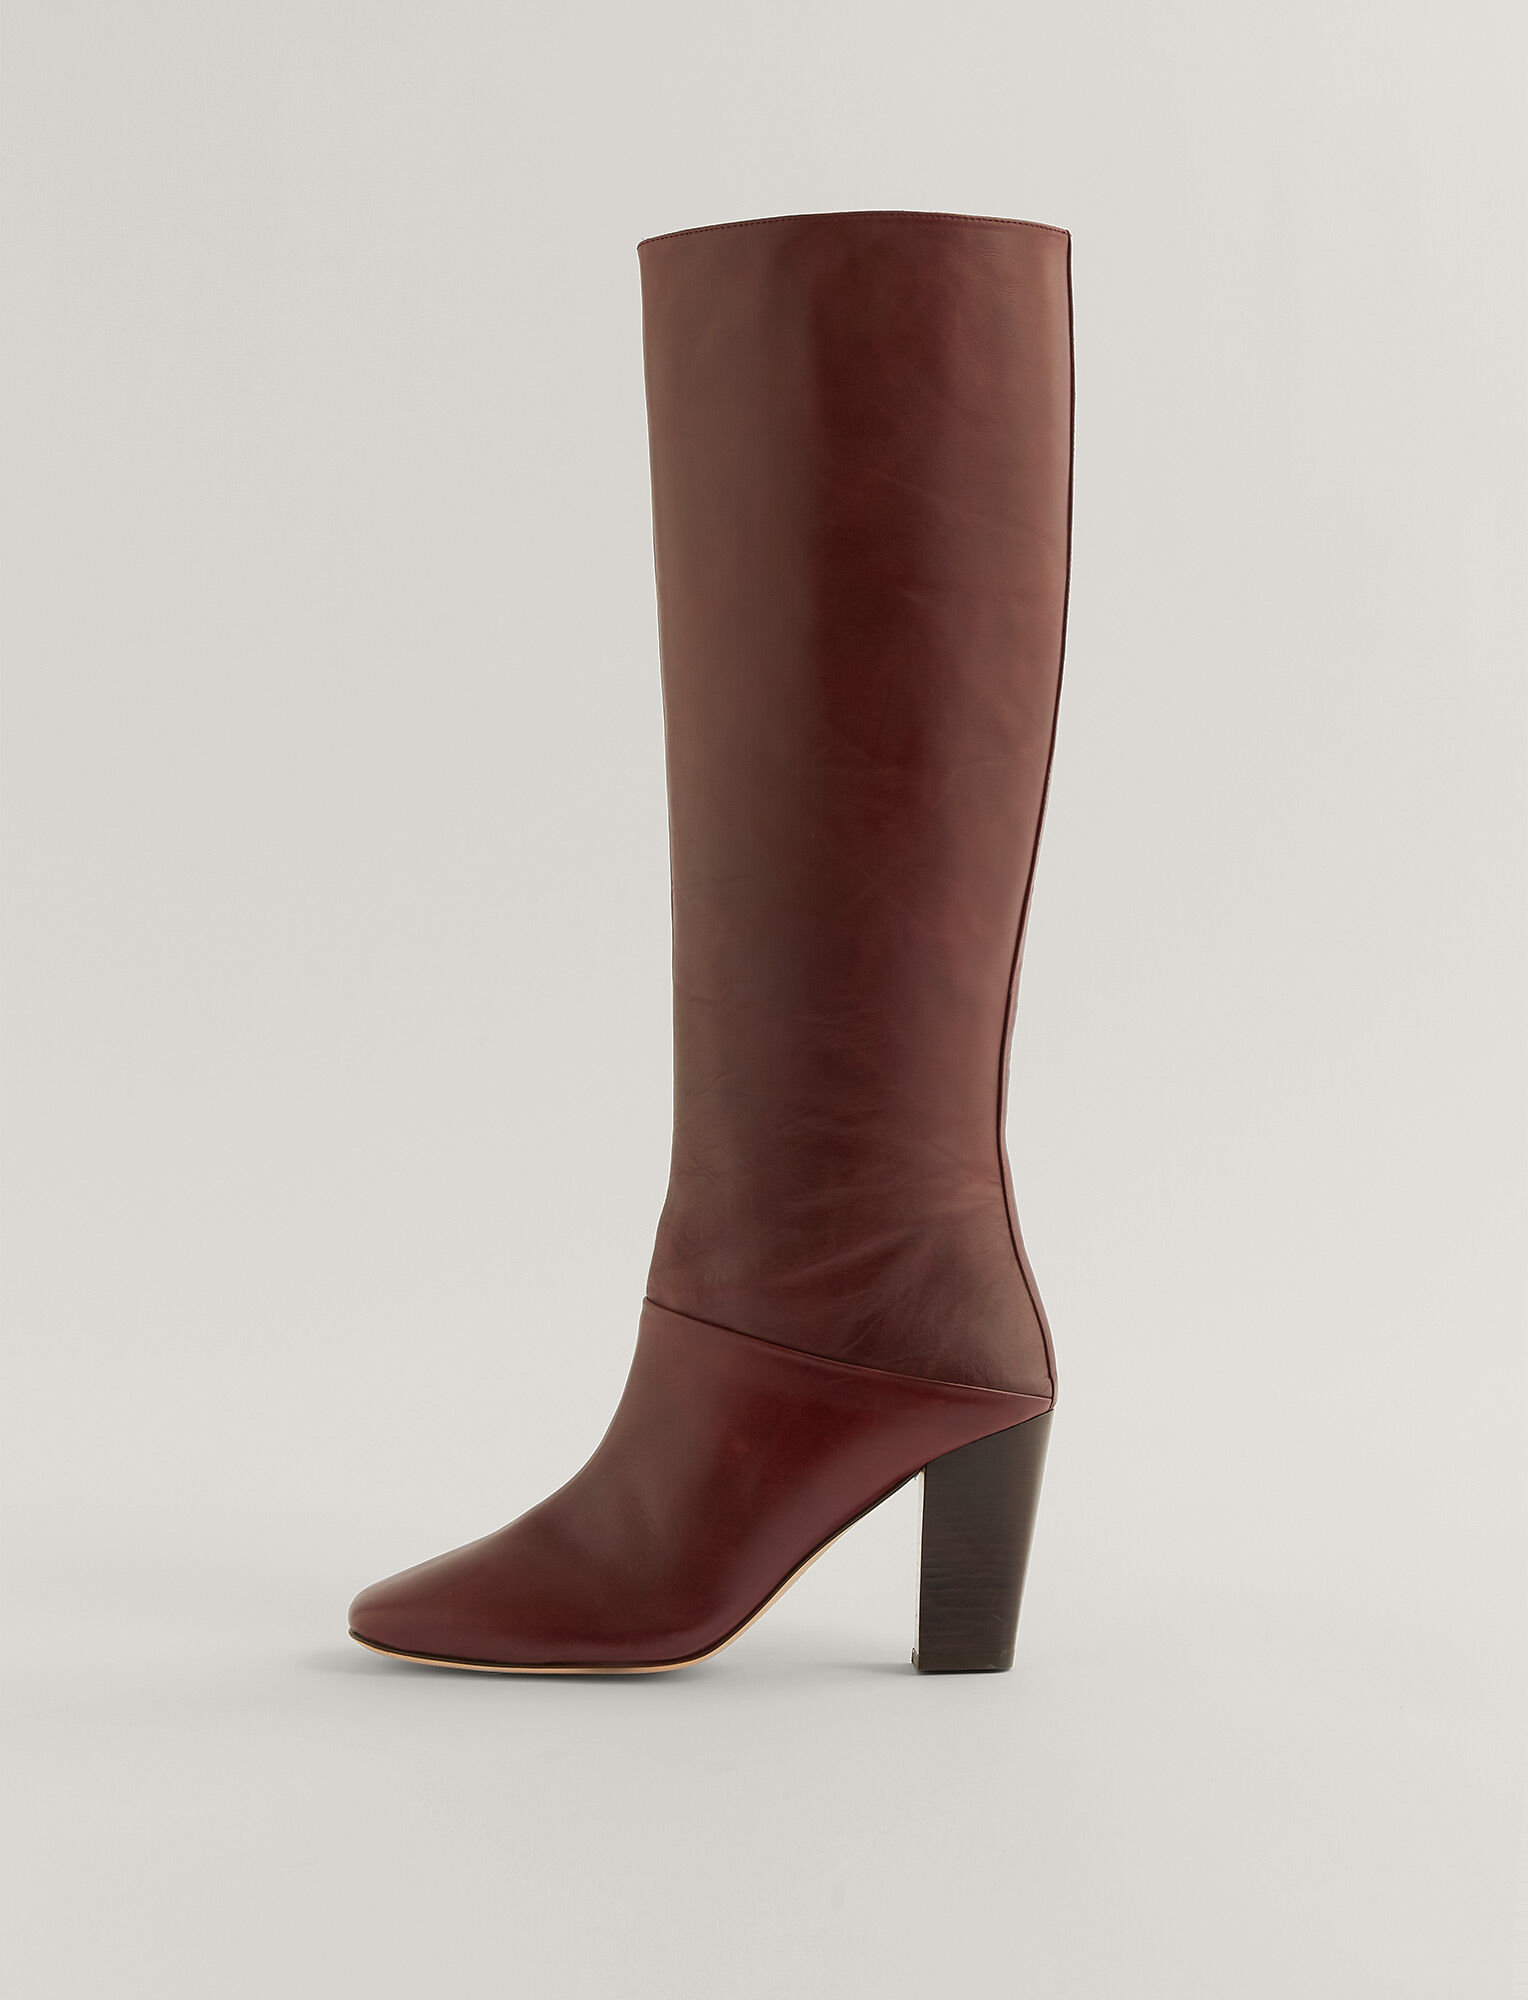 Joseph, Square Heel Long Boots, in Bordeaux